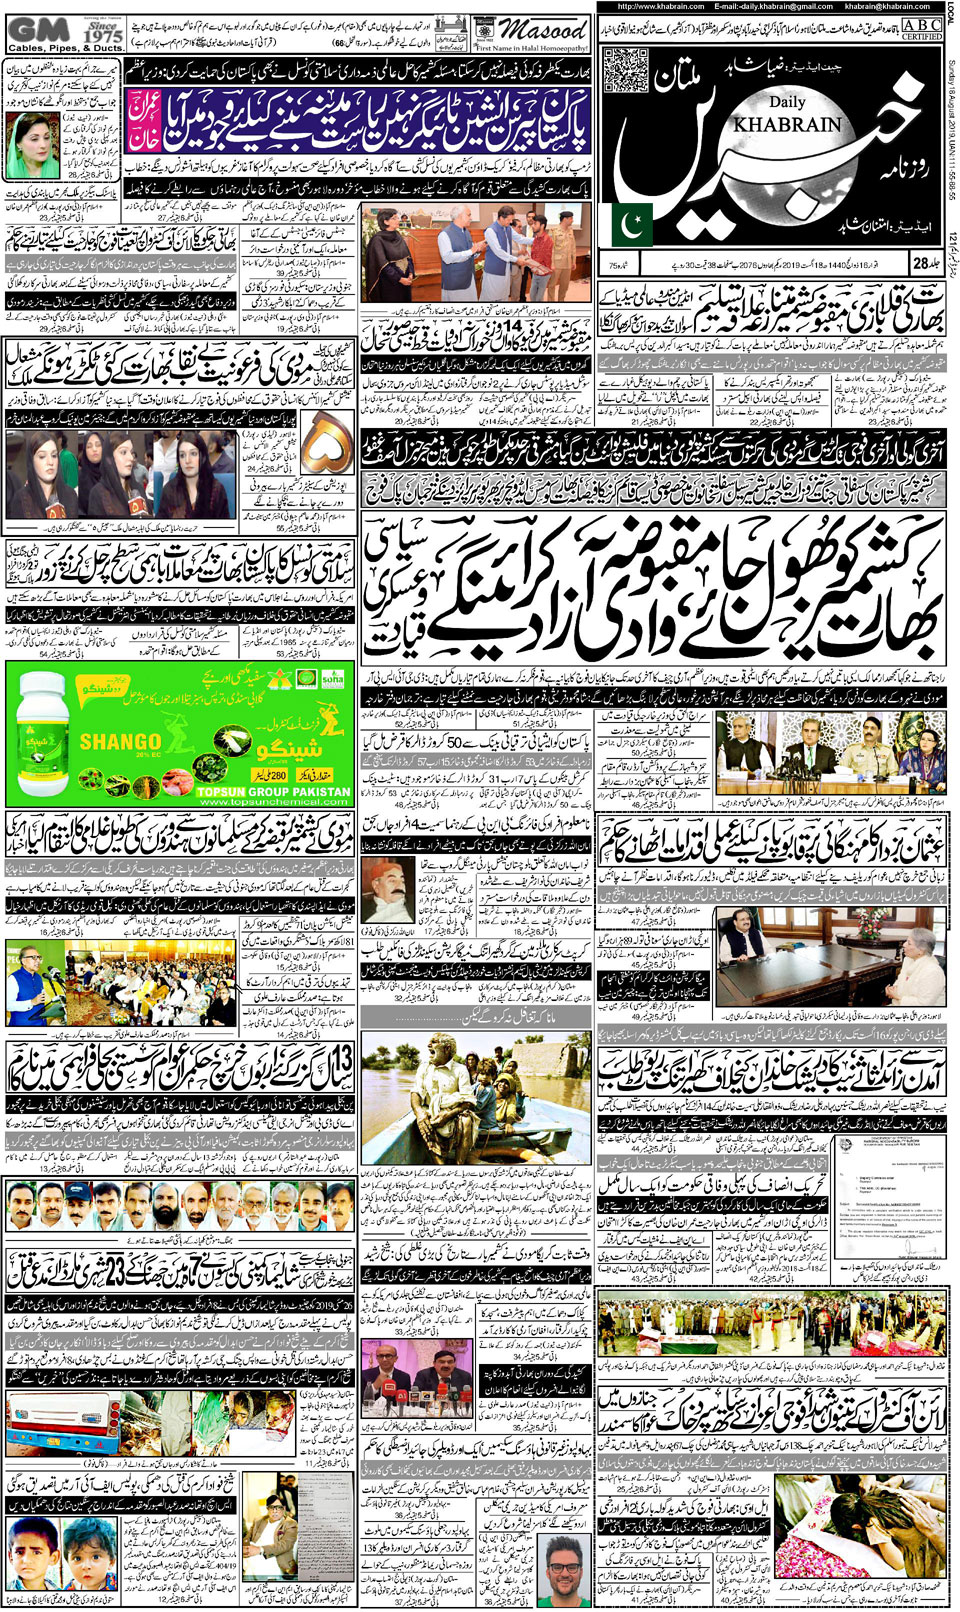 Daily Khabrain ePaper | خبریں | Urdu Khabrain Newspaper